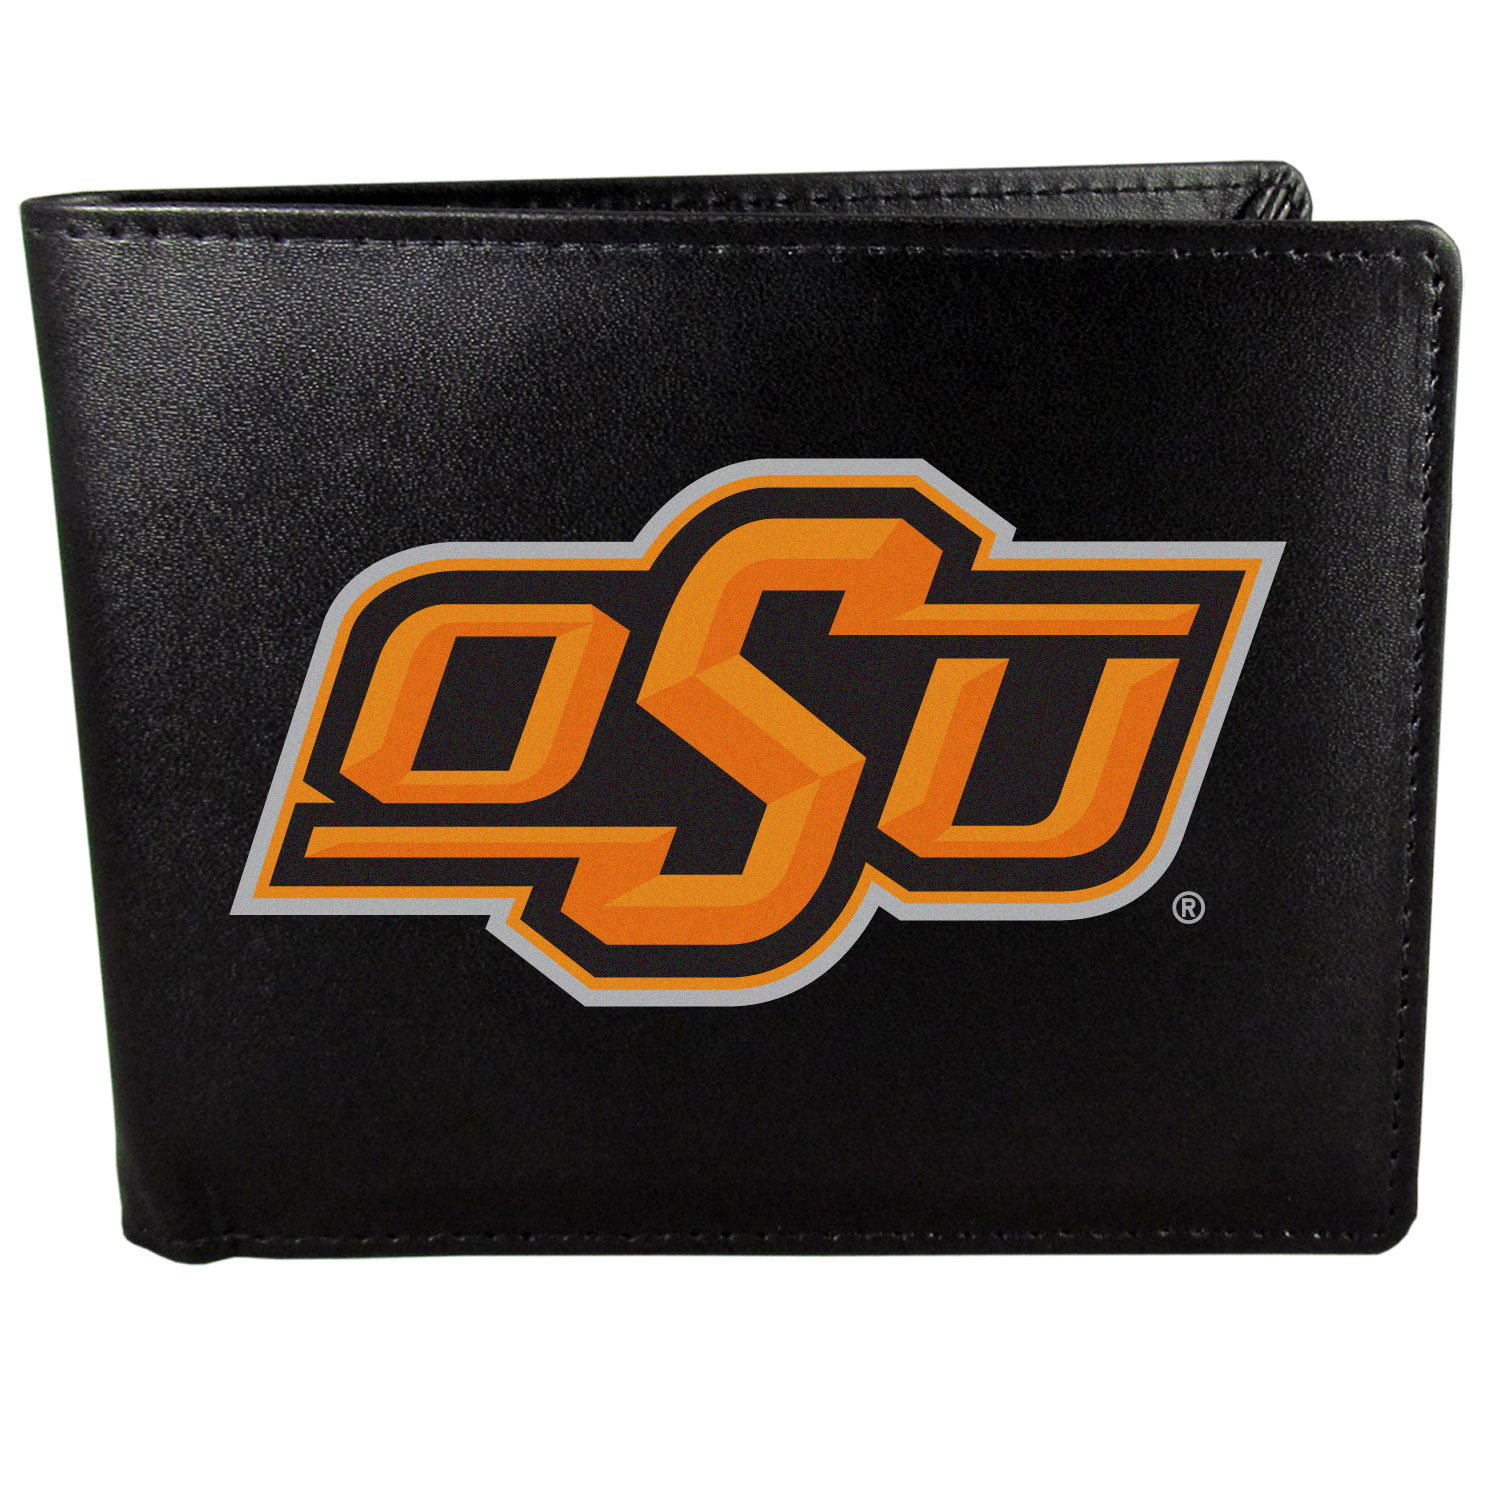 Oklahoma St. Cowboys Leather Bi-fold Wallet, Large Logo - Our classic fine leather bi-fold wallet is meticulously crafted with genuine leather that will age beautifully so you will have a quality wallet for years to come. The wallet opens to a large, billfold pocket and numerous credit card slots and has a convenient windowed ID slot. The front of the wallet features an extra large Oklahoma St. Cowboys printed logo.